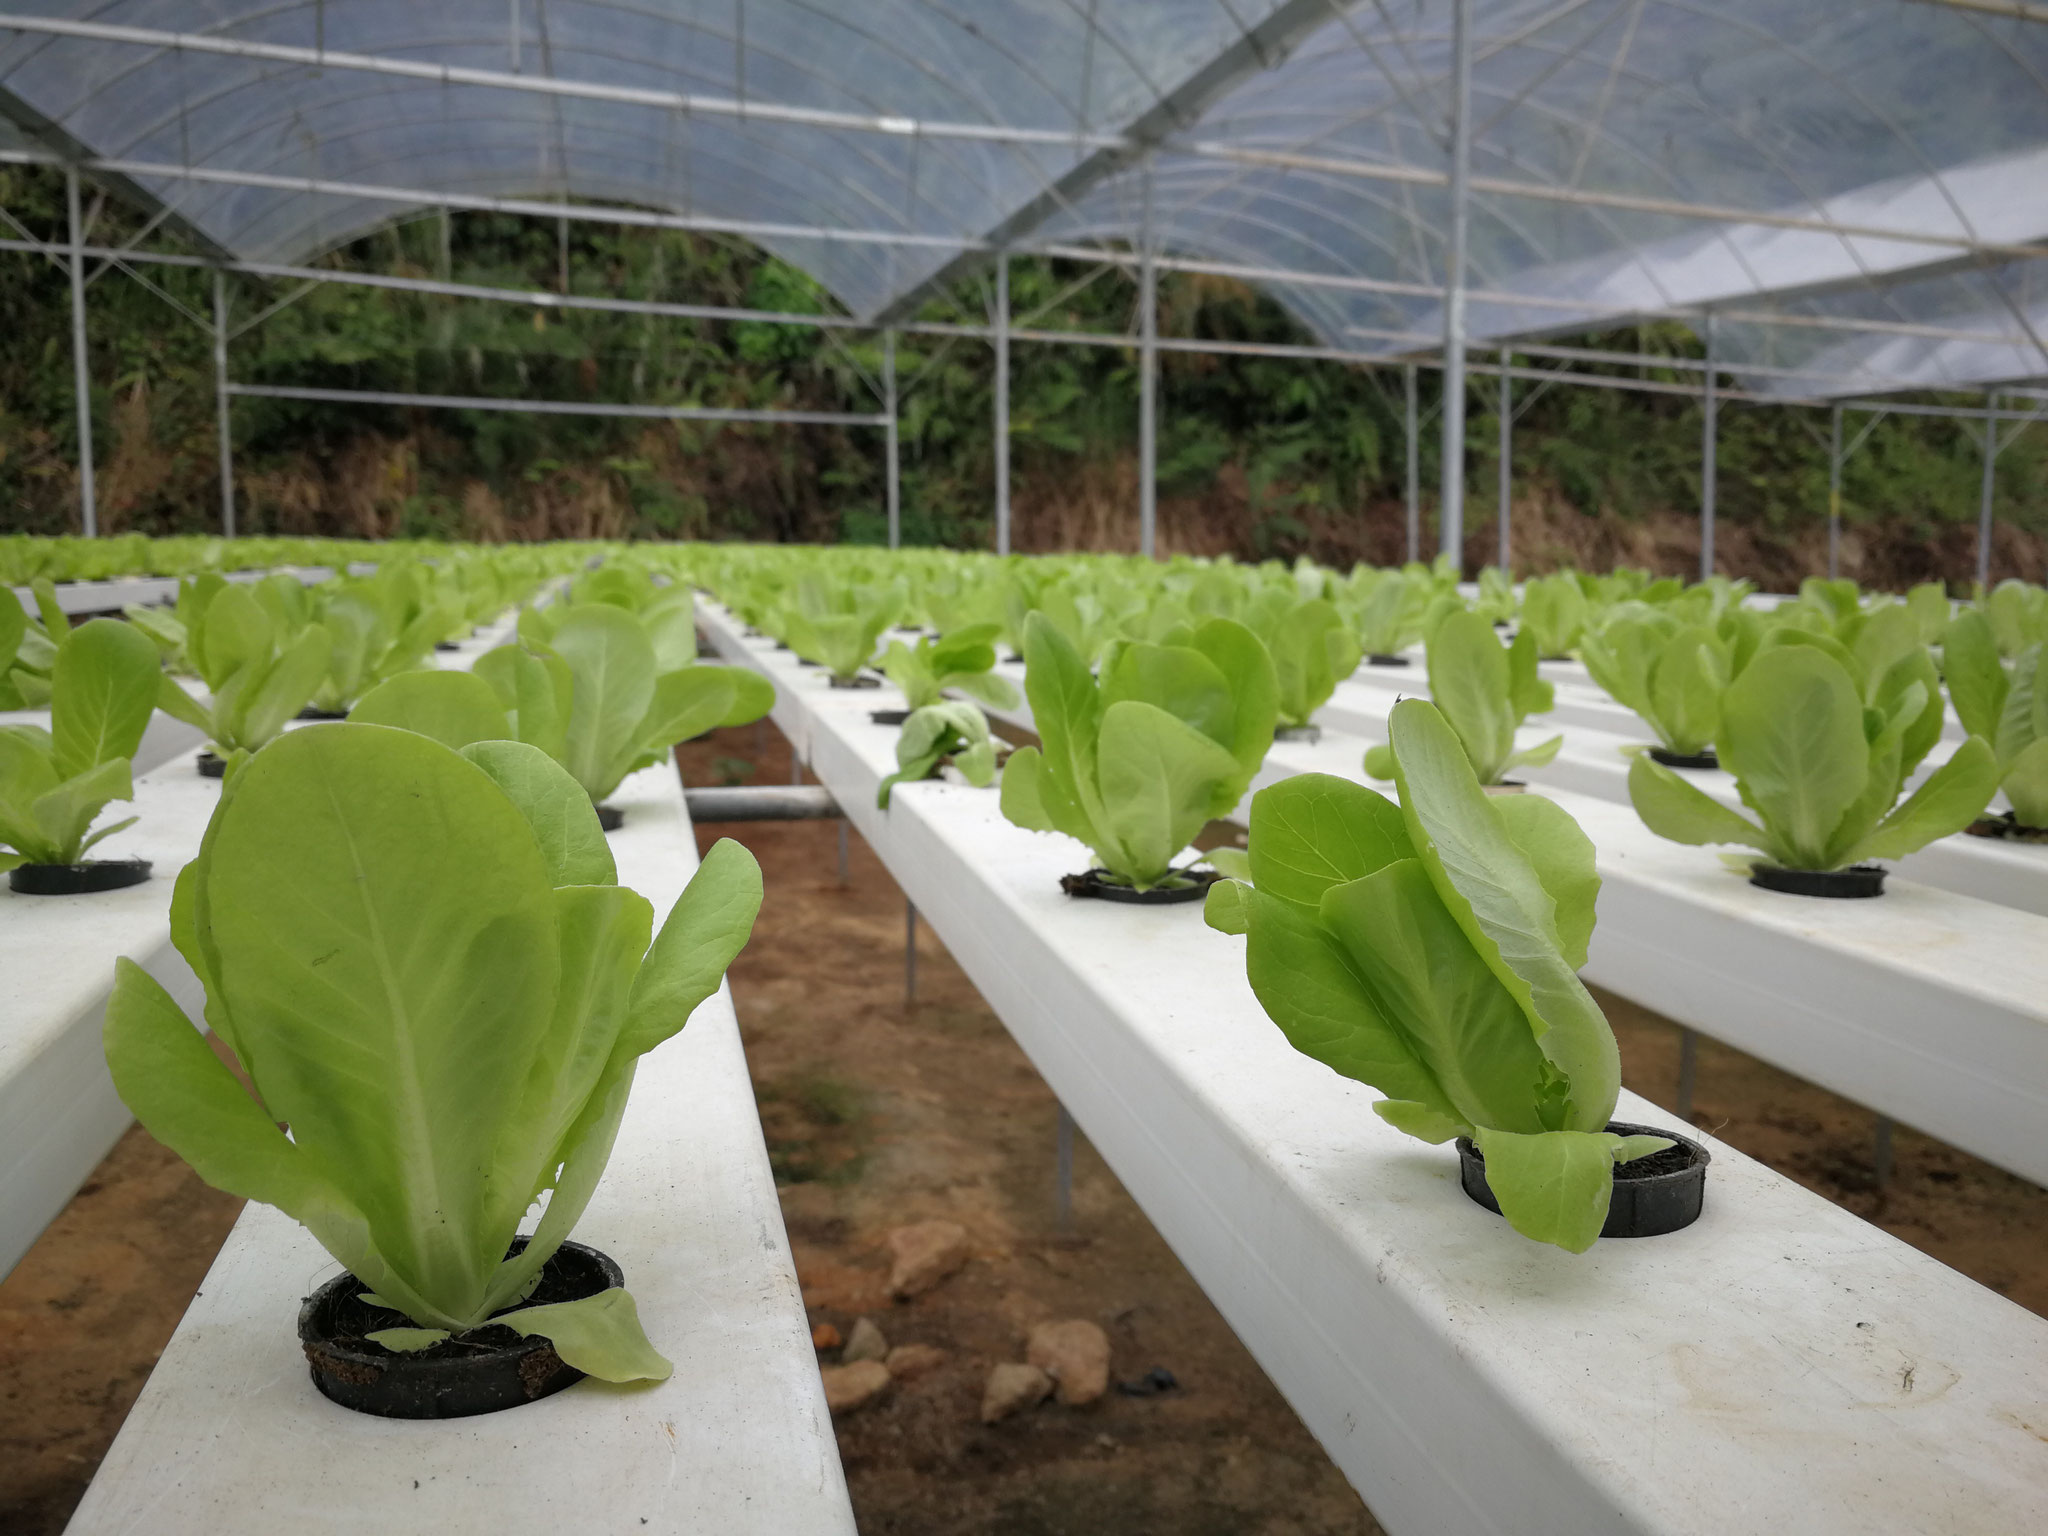 Hydroponic-grown lettuce. Photo credits to Jia May